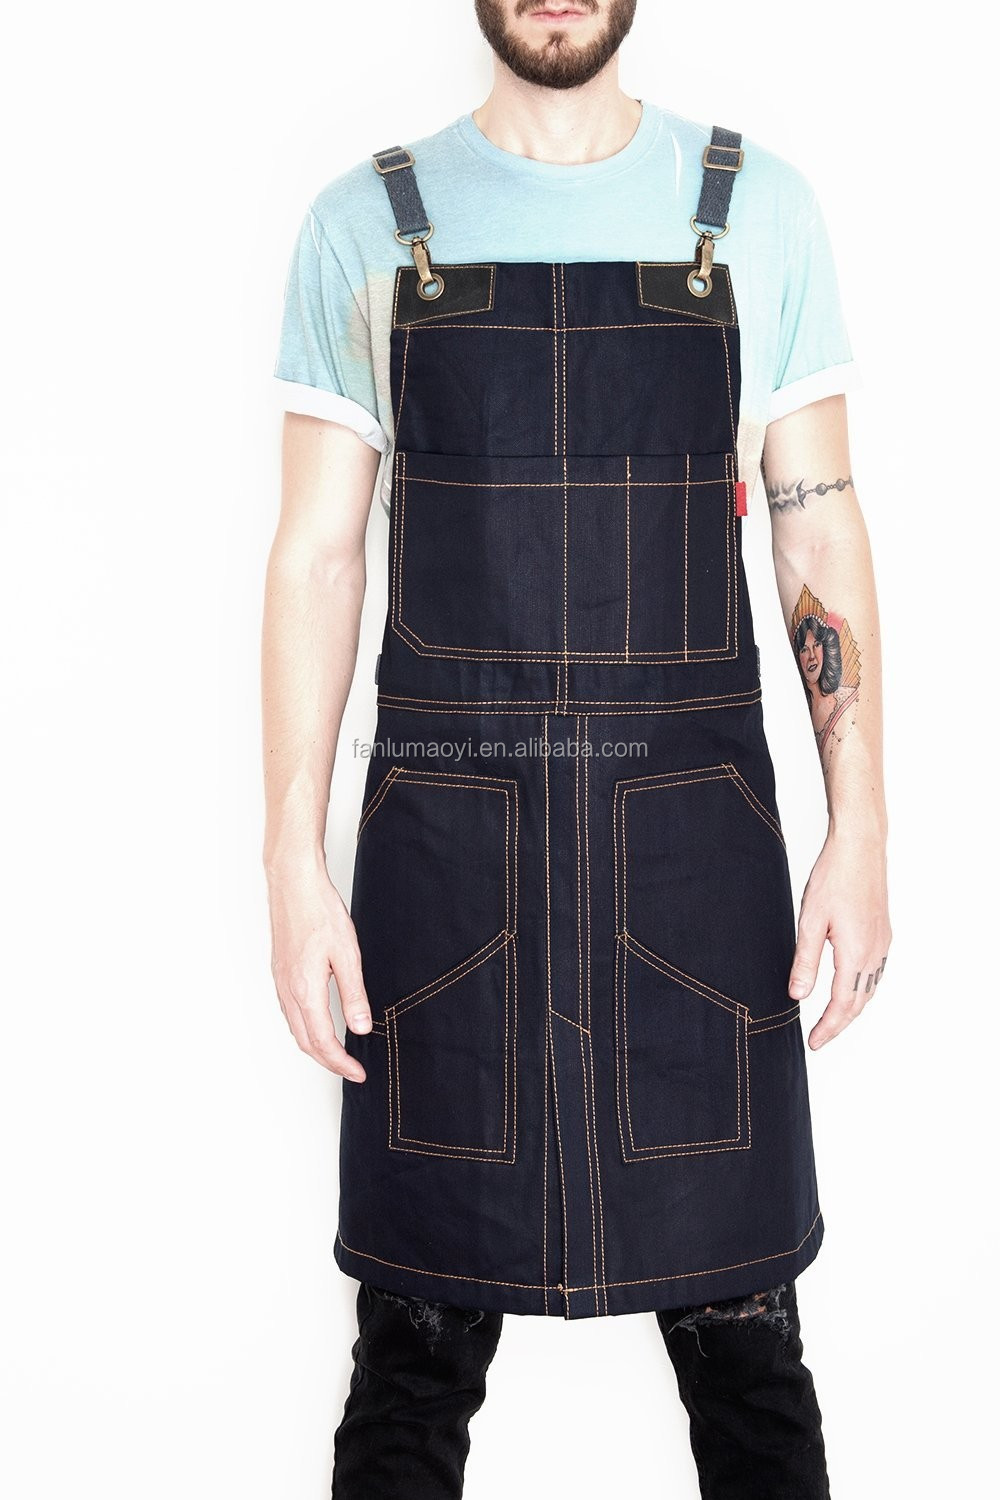 Hair Salon Cutting Apron Barber Hairdressing Cape For